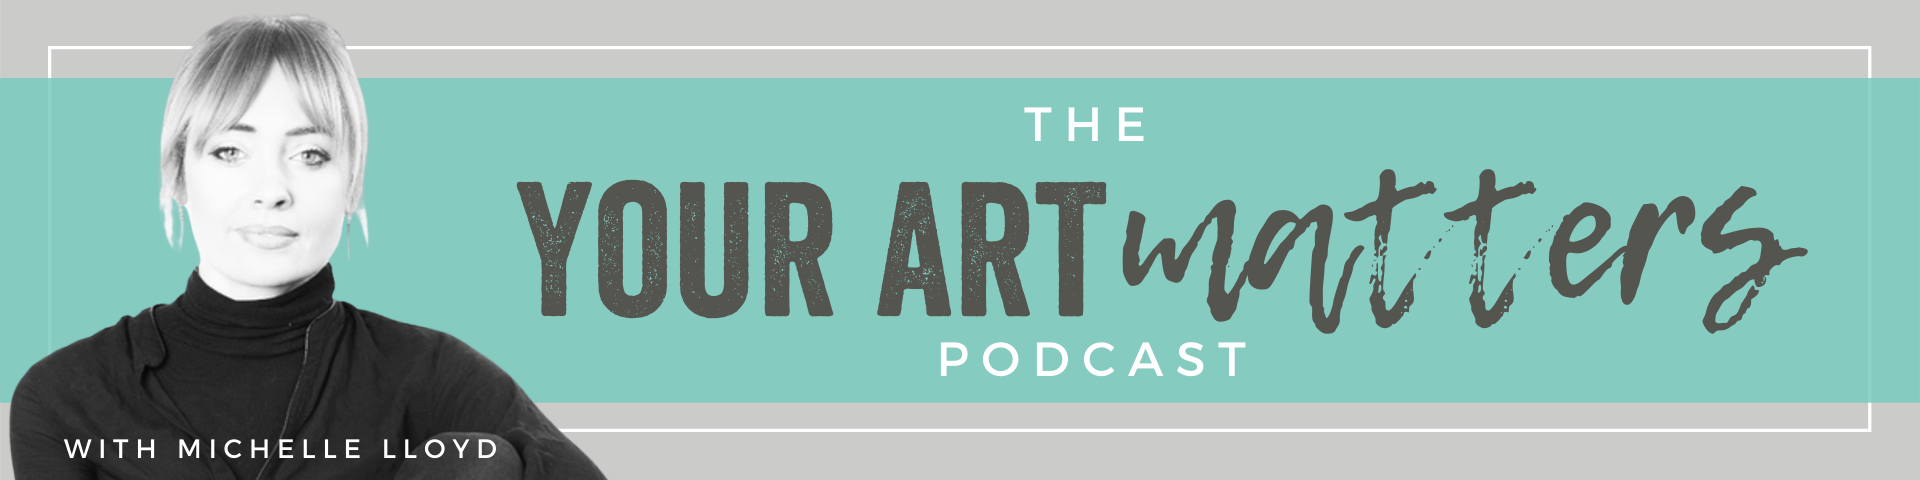 The Your Art Matters Podcast